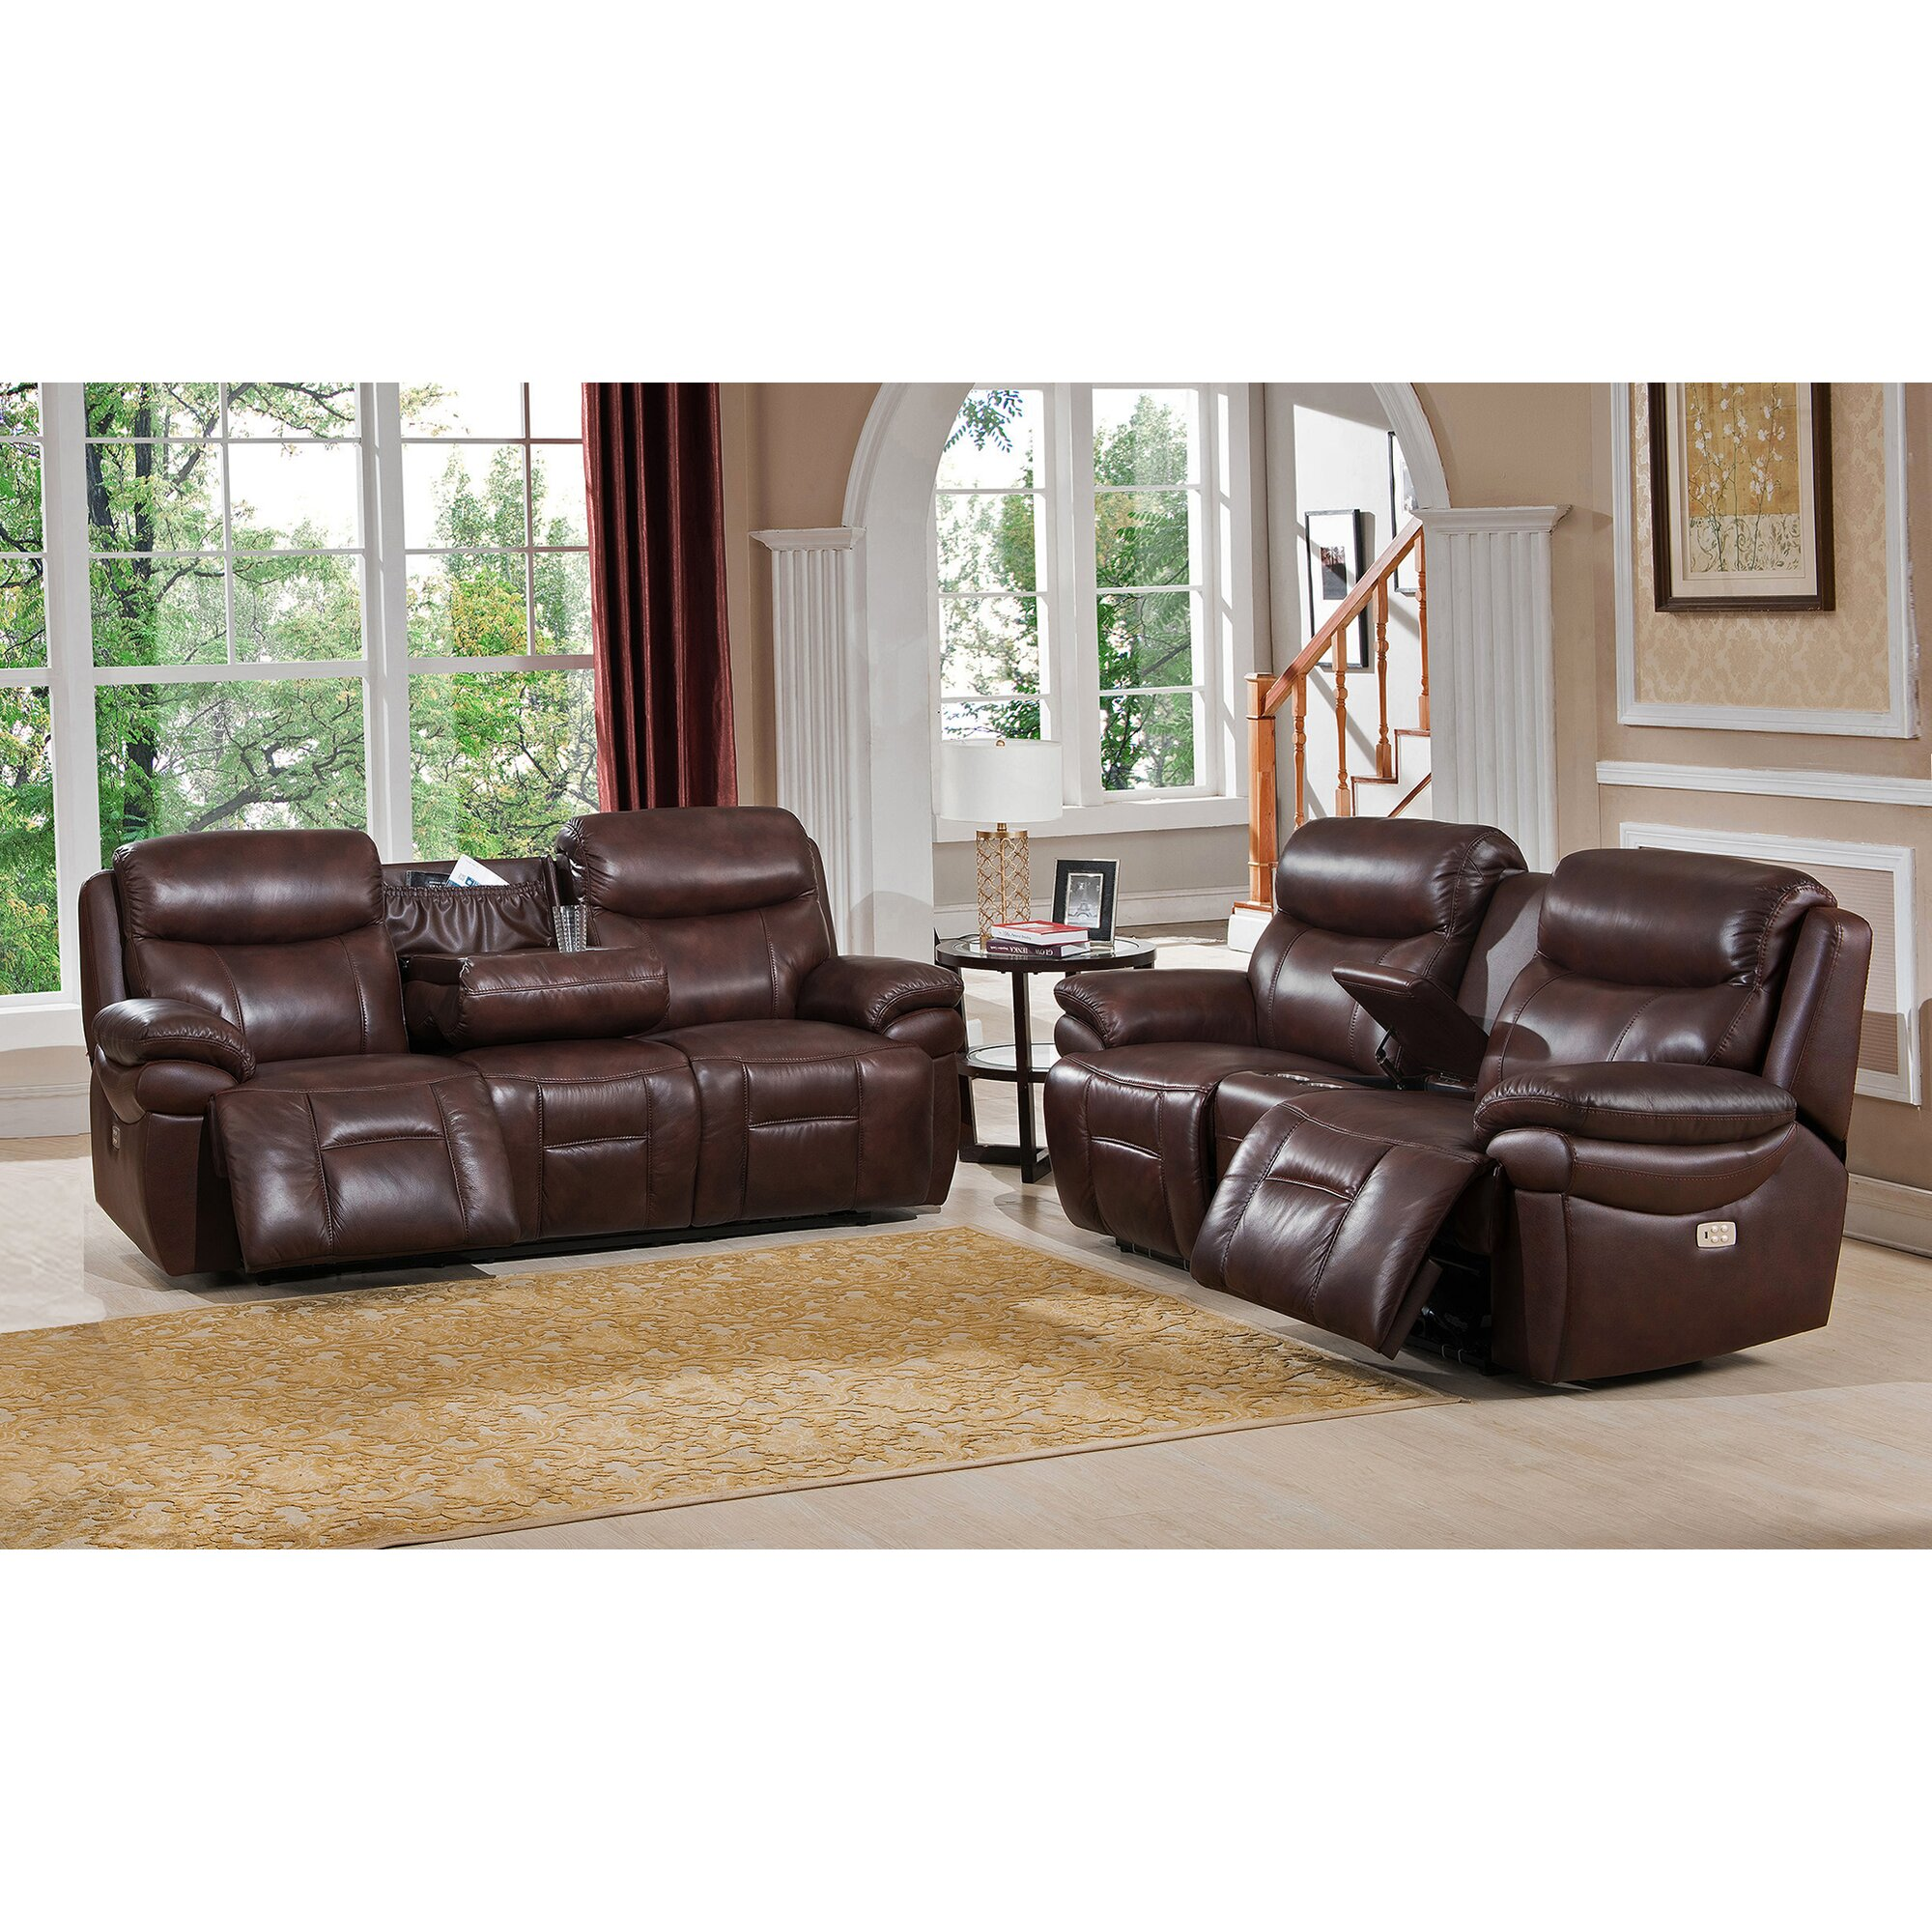 amax sanford 2 piece leather power reclining living room set withemejing recliner living room set pictures amazing design ideas. beautiful ideas. Home Design Ideas